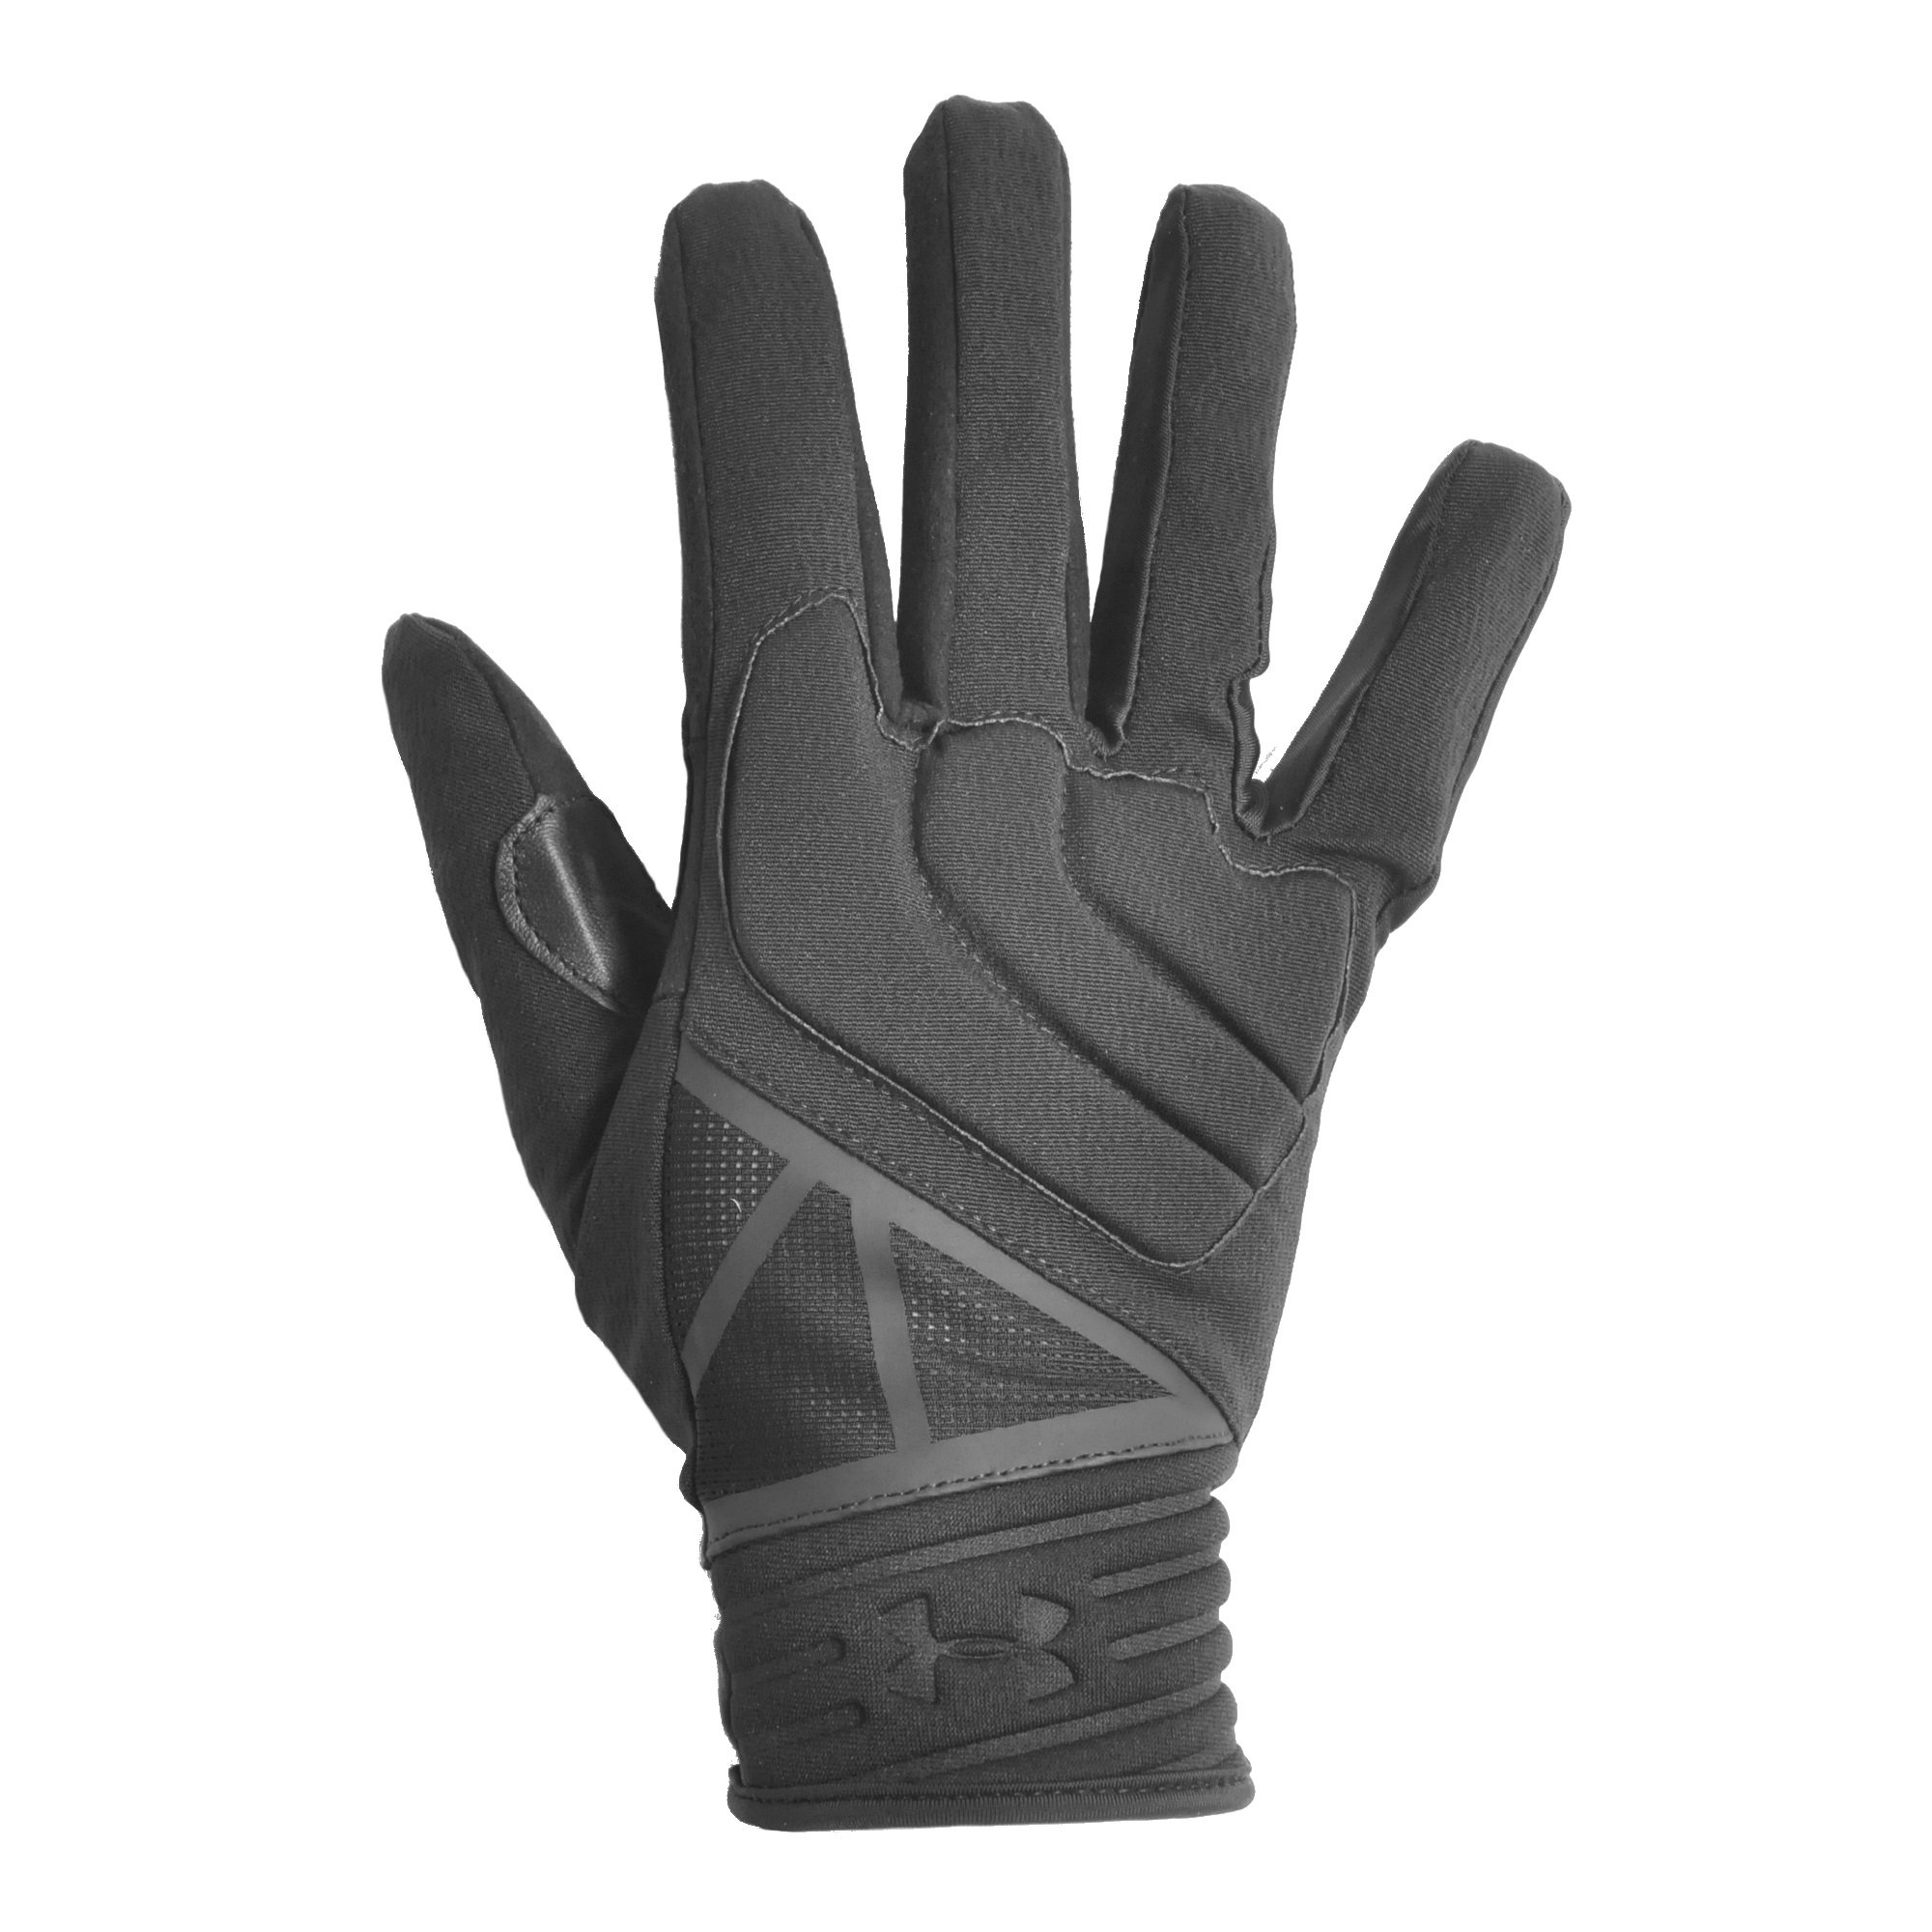 Under Armour Mens UA Tactical Duty Gloves Medium Coyote Brown